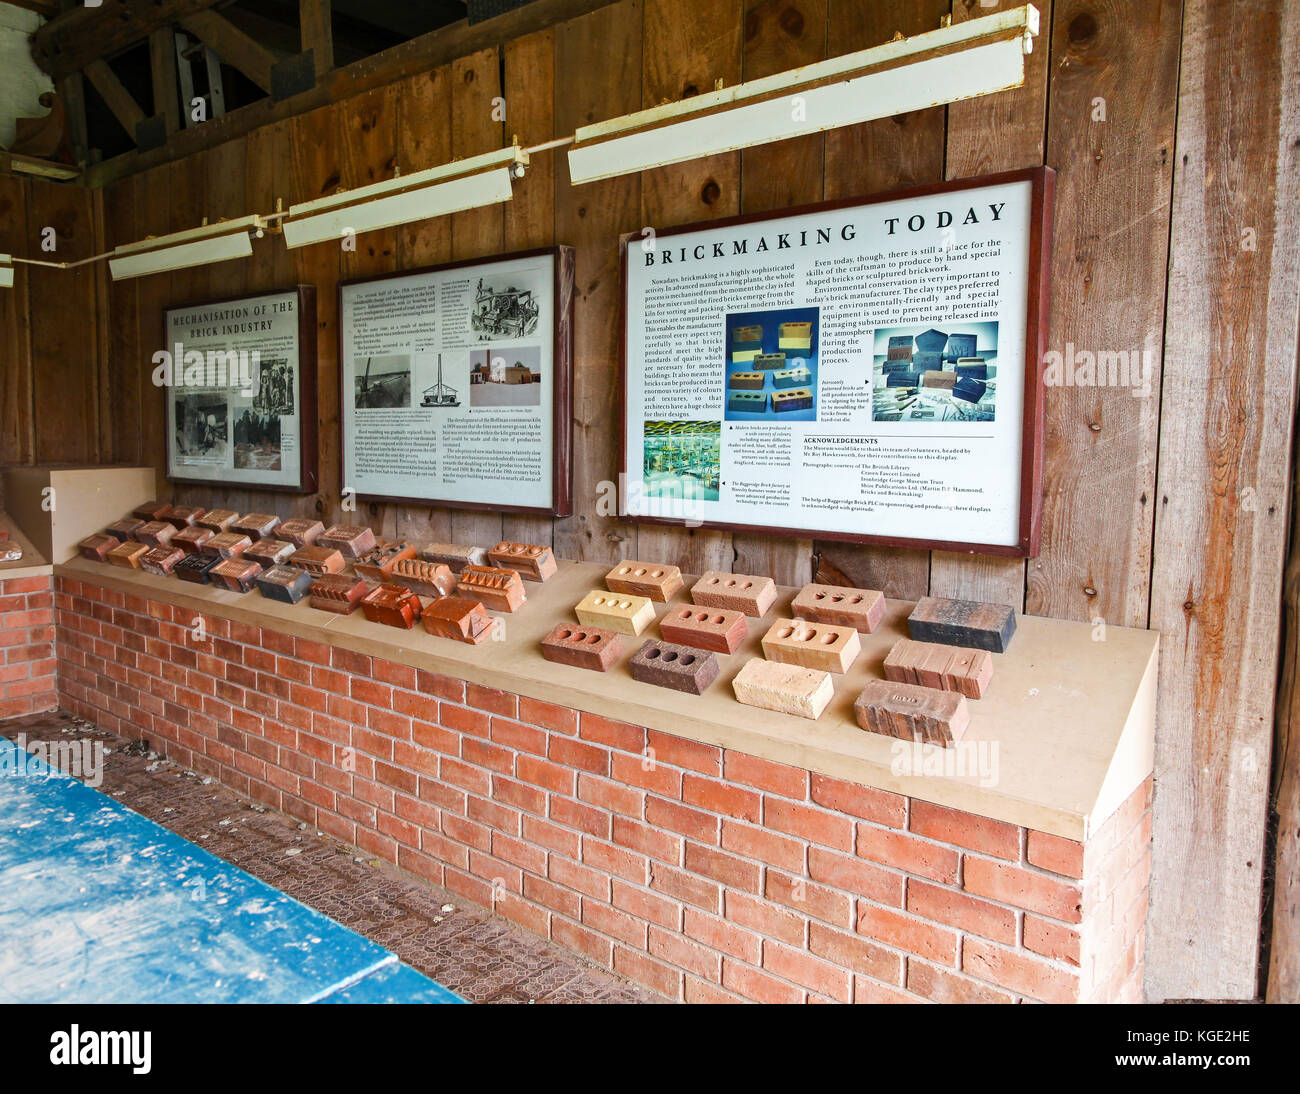 Different types of bricks display at the Avoncroft Museum of Buildings, Stoke Heath, Bromsgrove, Worcestershire, - Stock Image